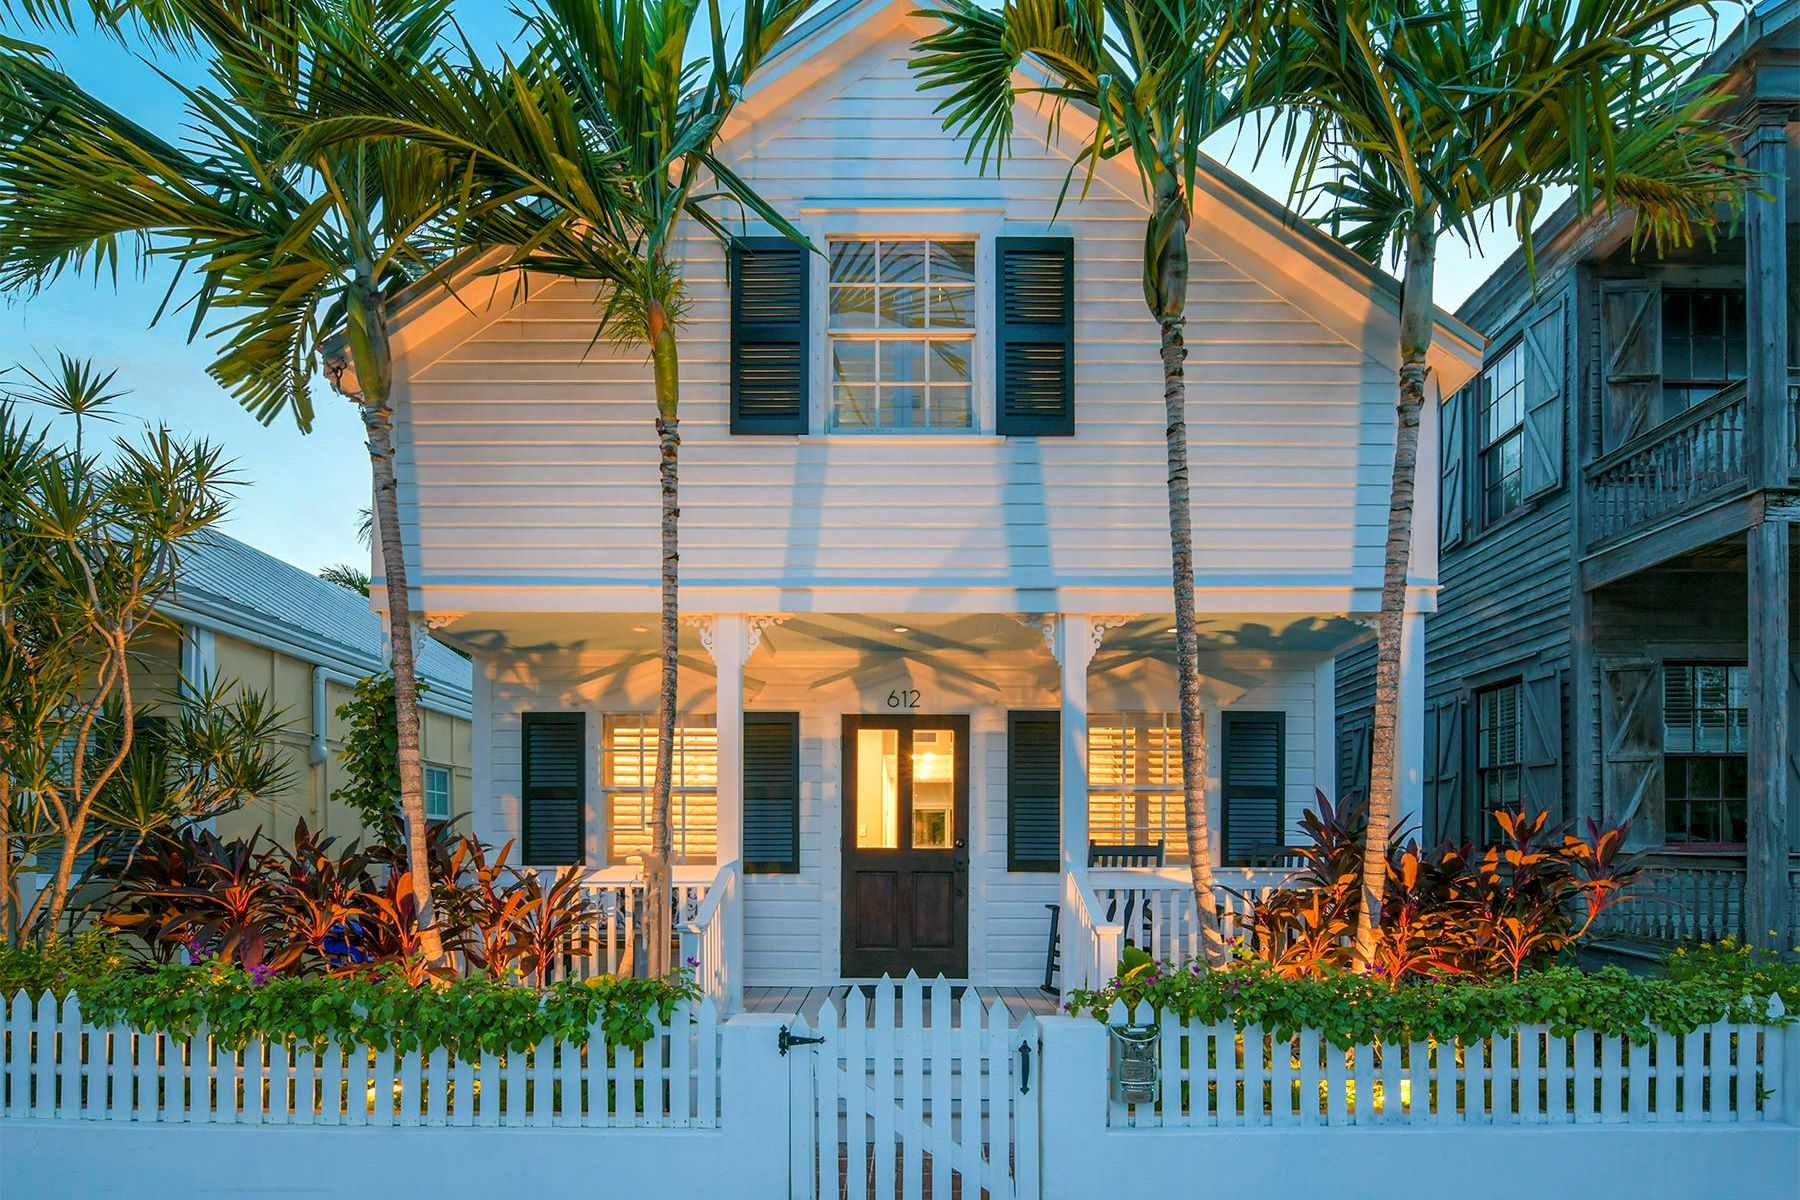 Single Family Homes pour l Vente à 612 White Street, Key West, FL Key West, Floride 33040 États-Unis